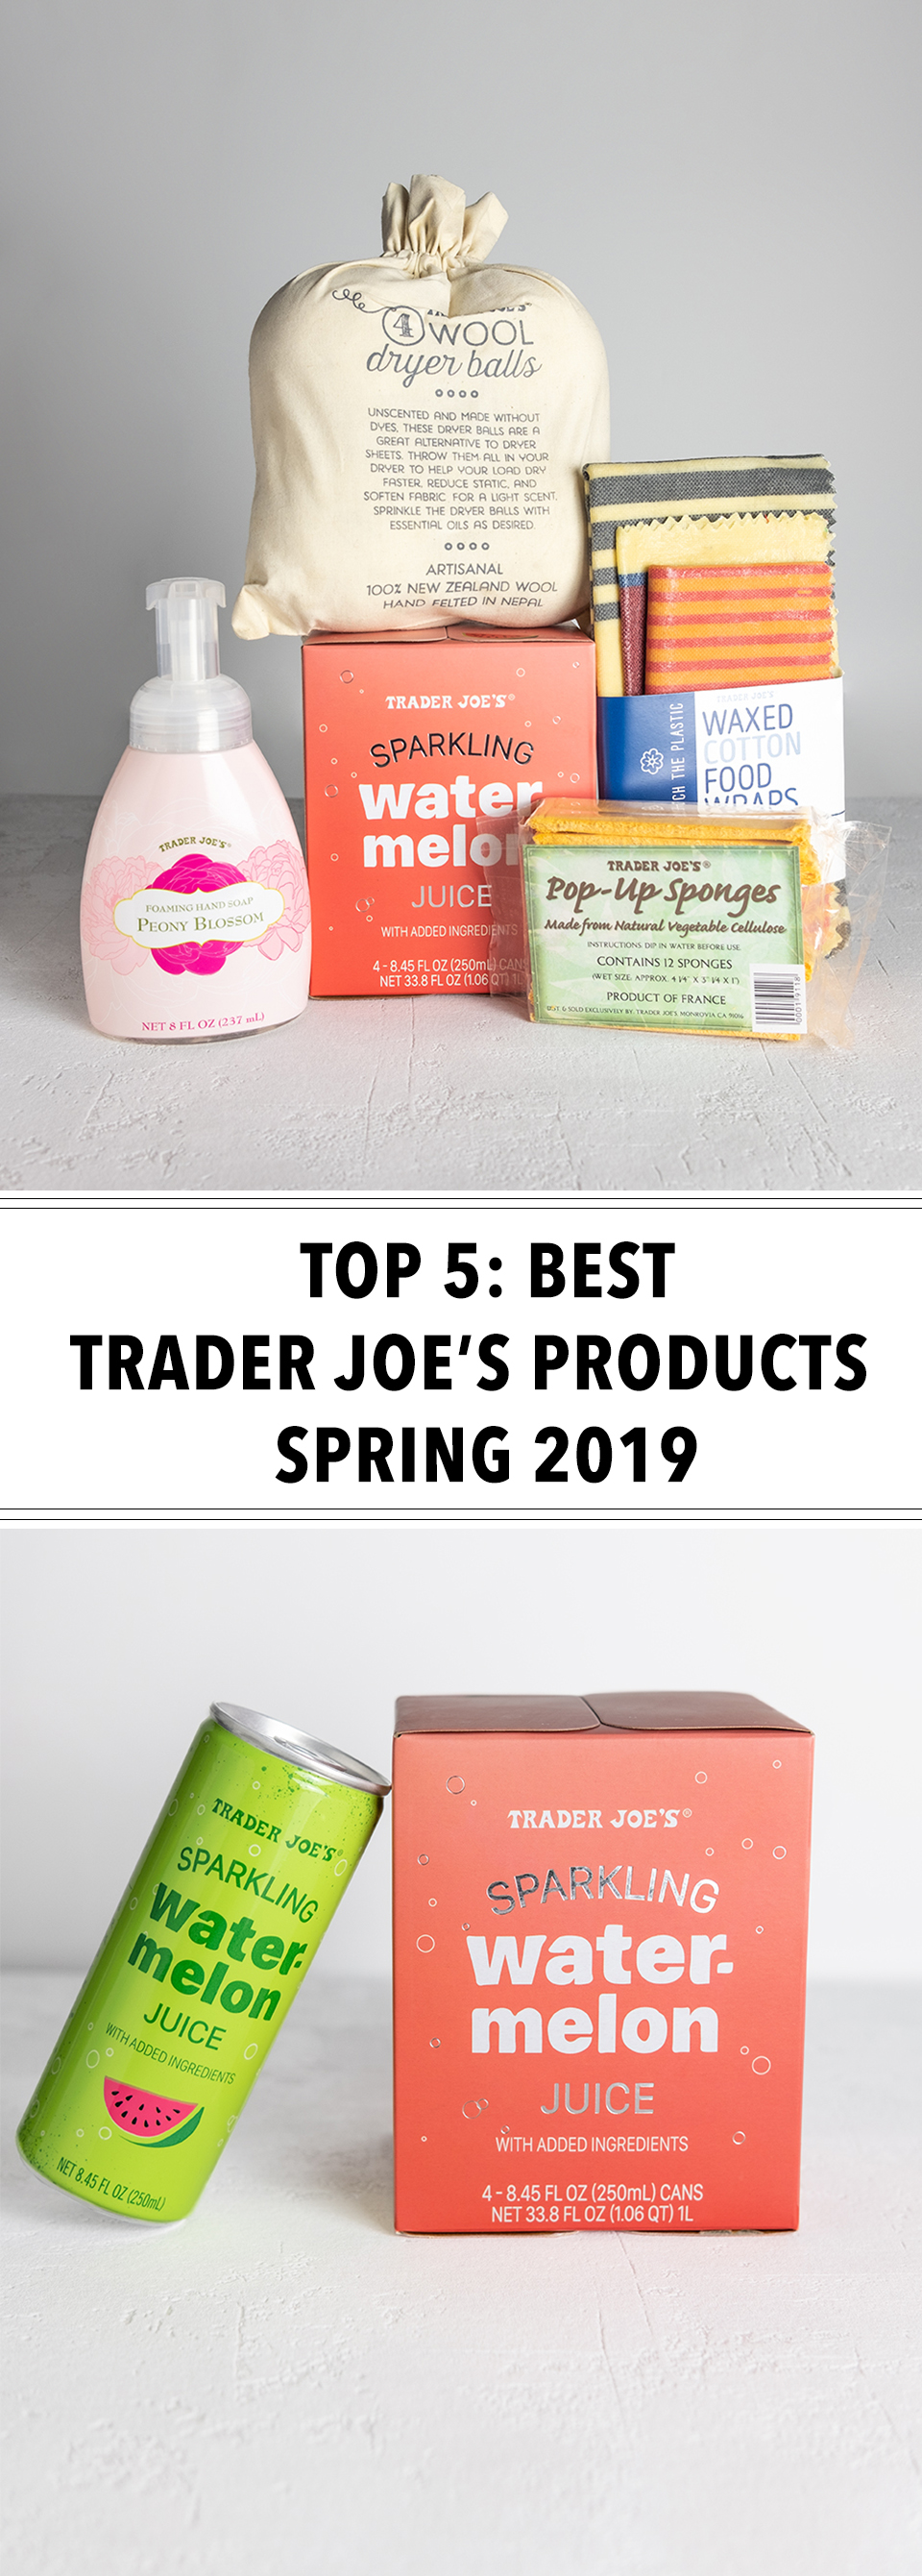 JodiLoves_Retouching_Brilliant_Pixel_Imaging-Top-5-Best-Traderjoes-product-spring-2019.jpg